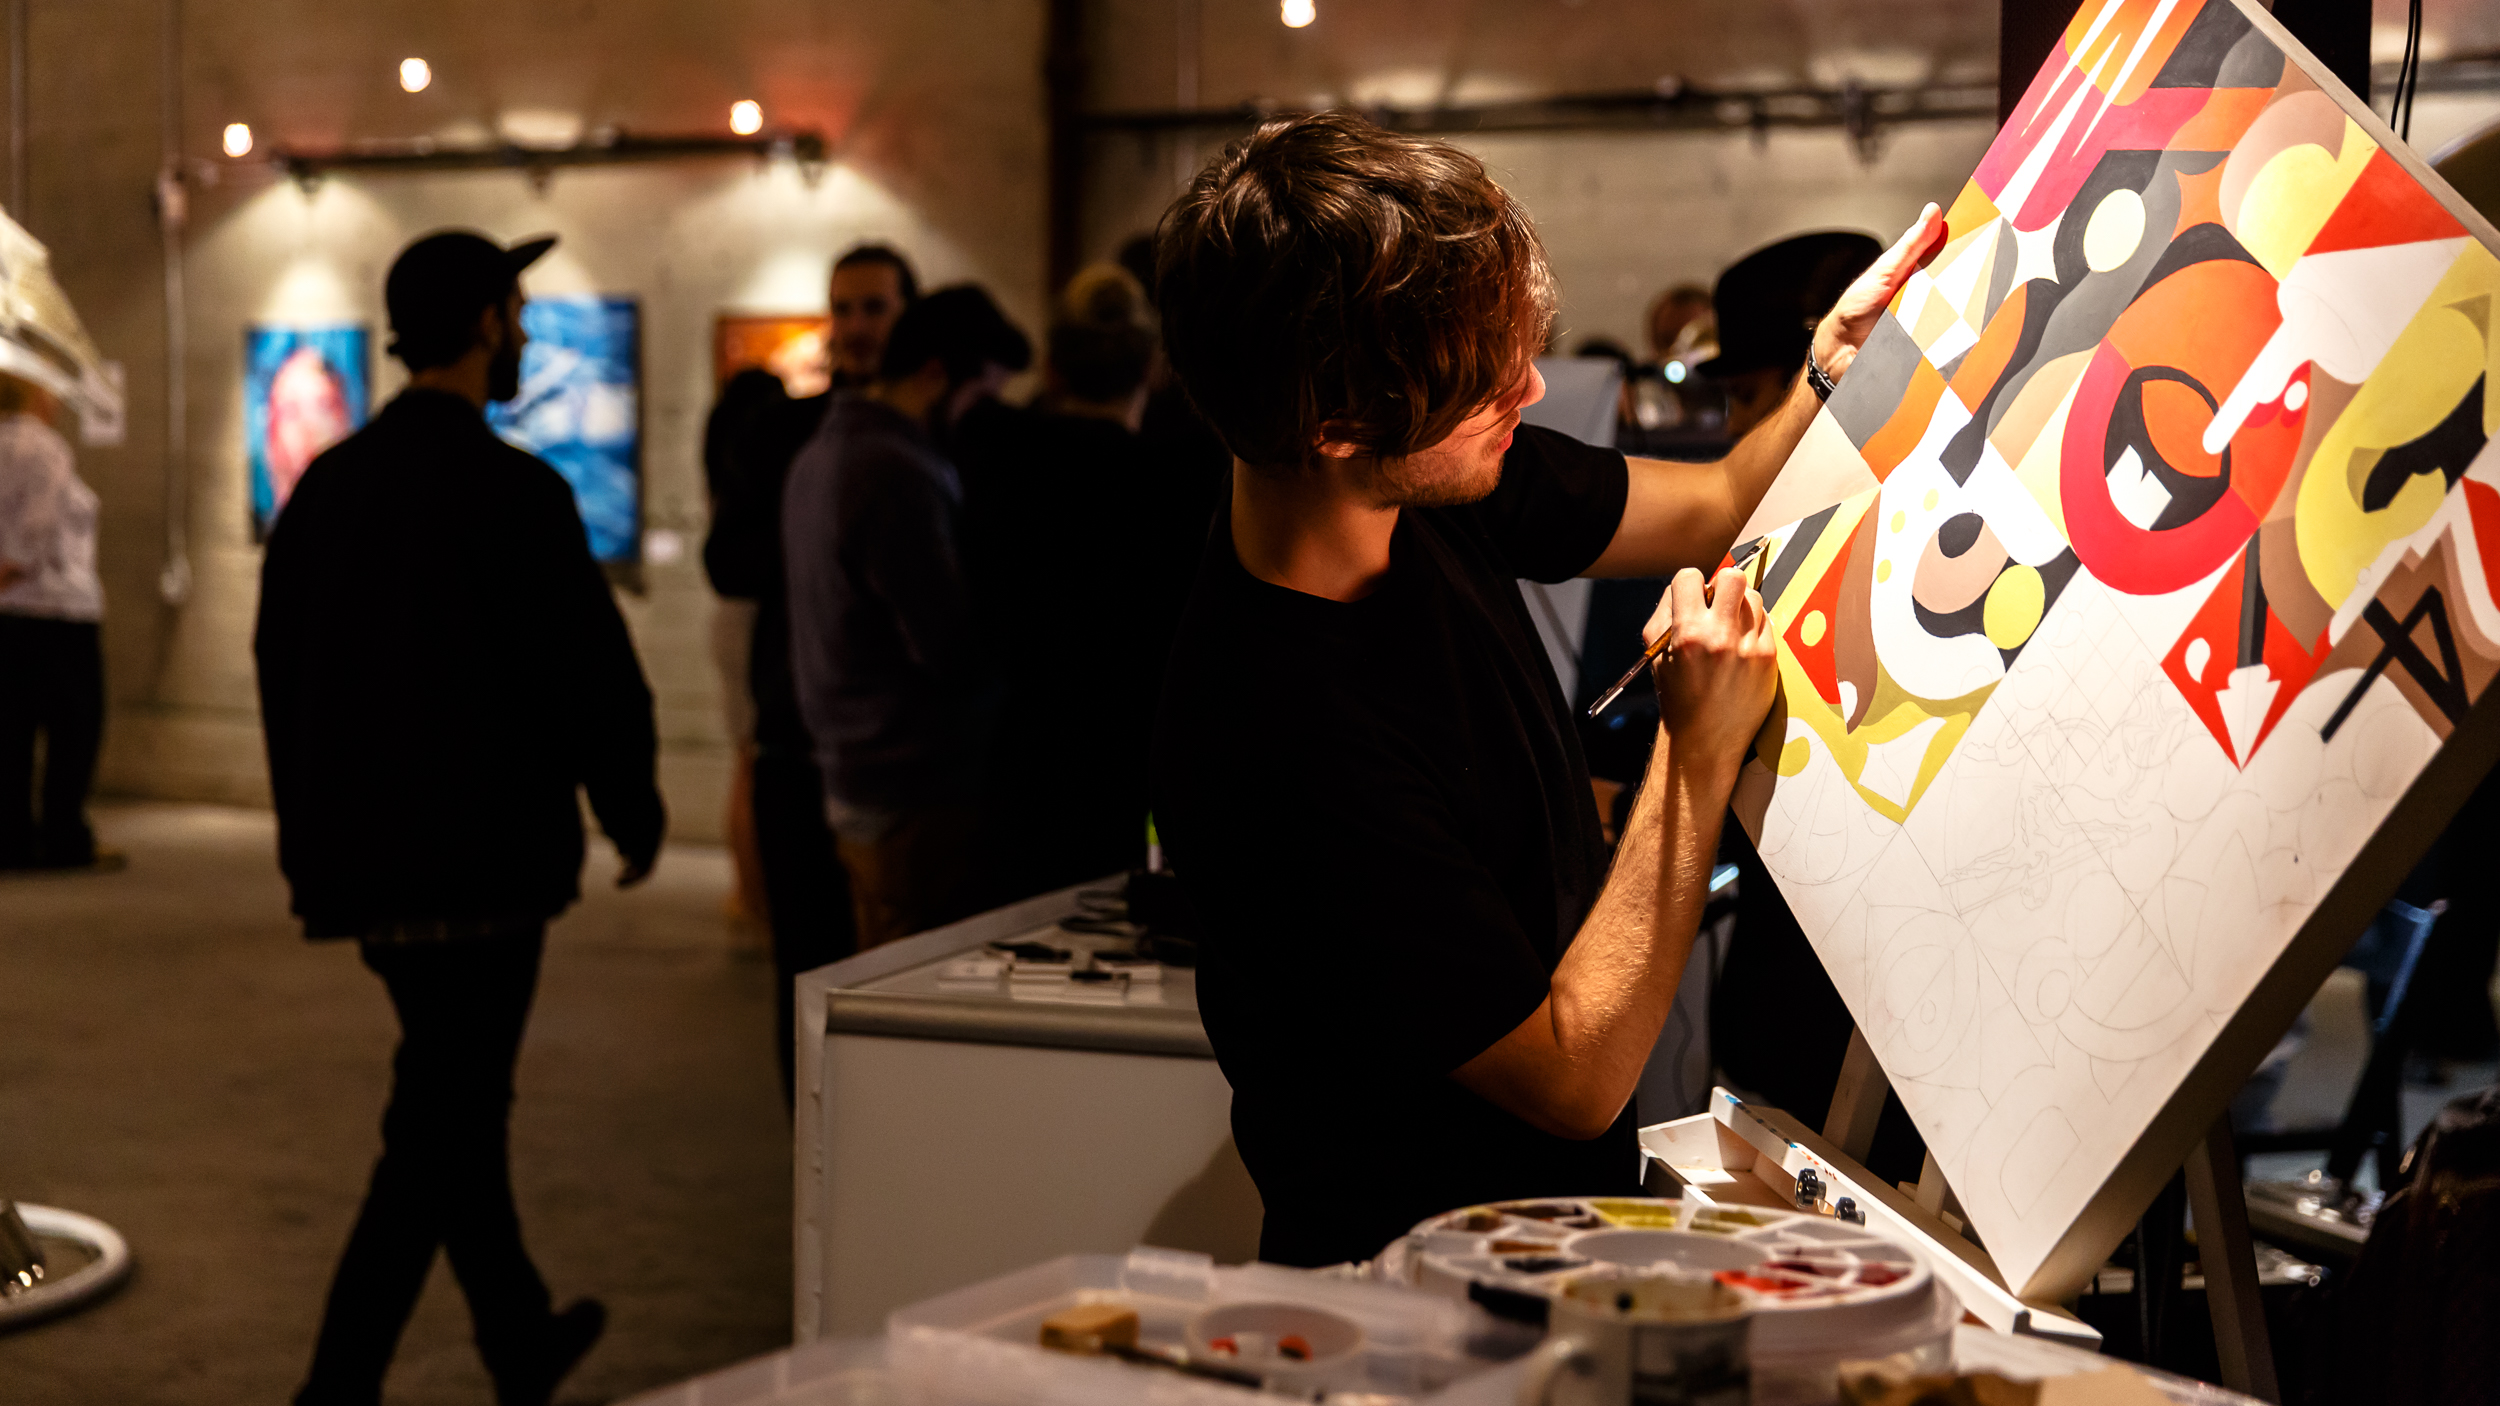 TED-Art-Vancouver-image7.jpg